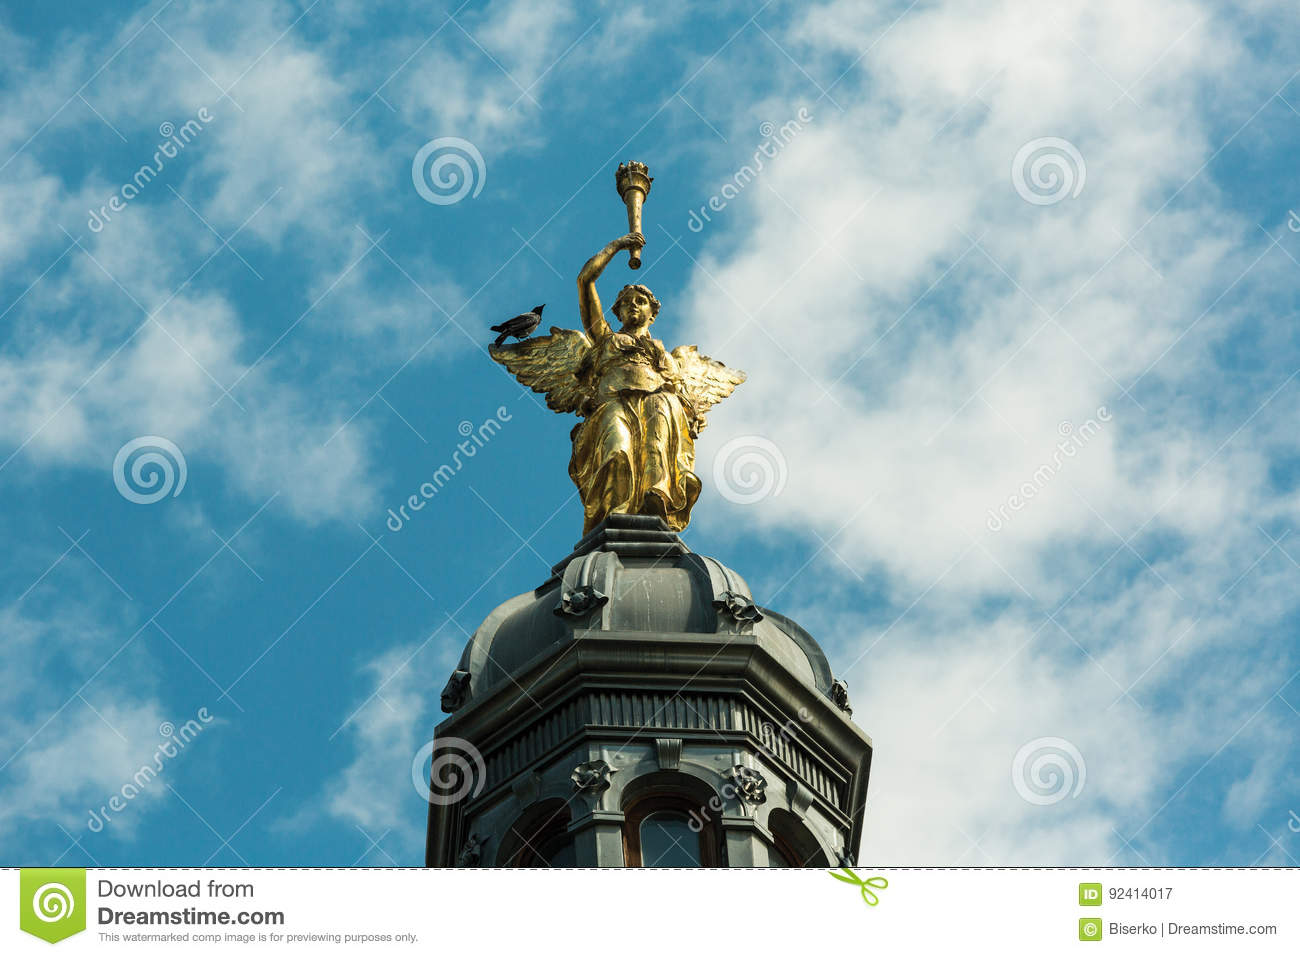 Symbols Of Victory And Death Stock Image Image Of Rook Wings